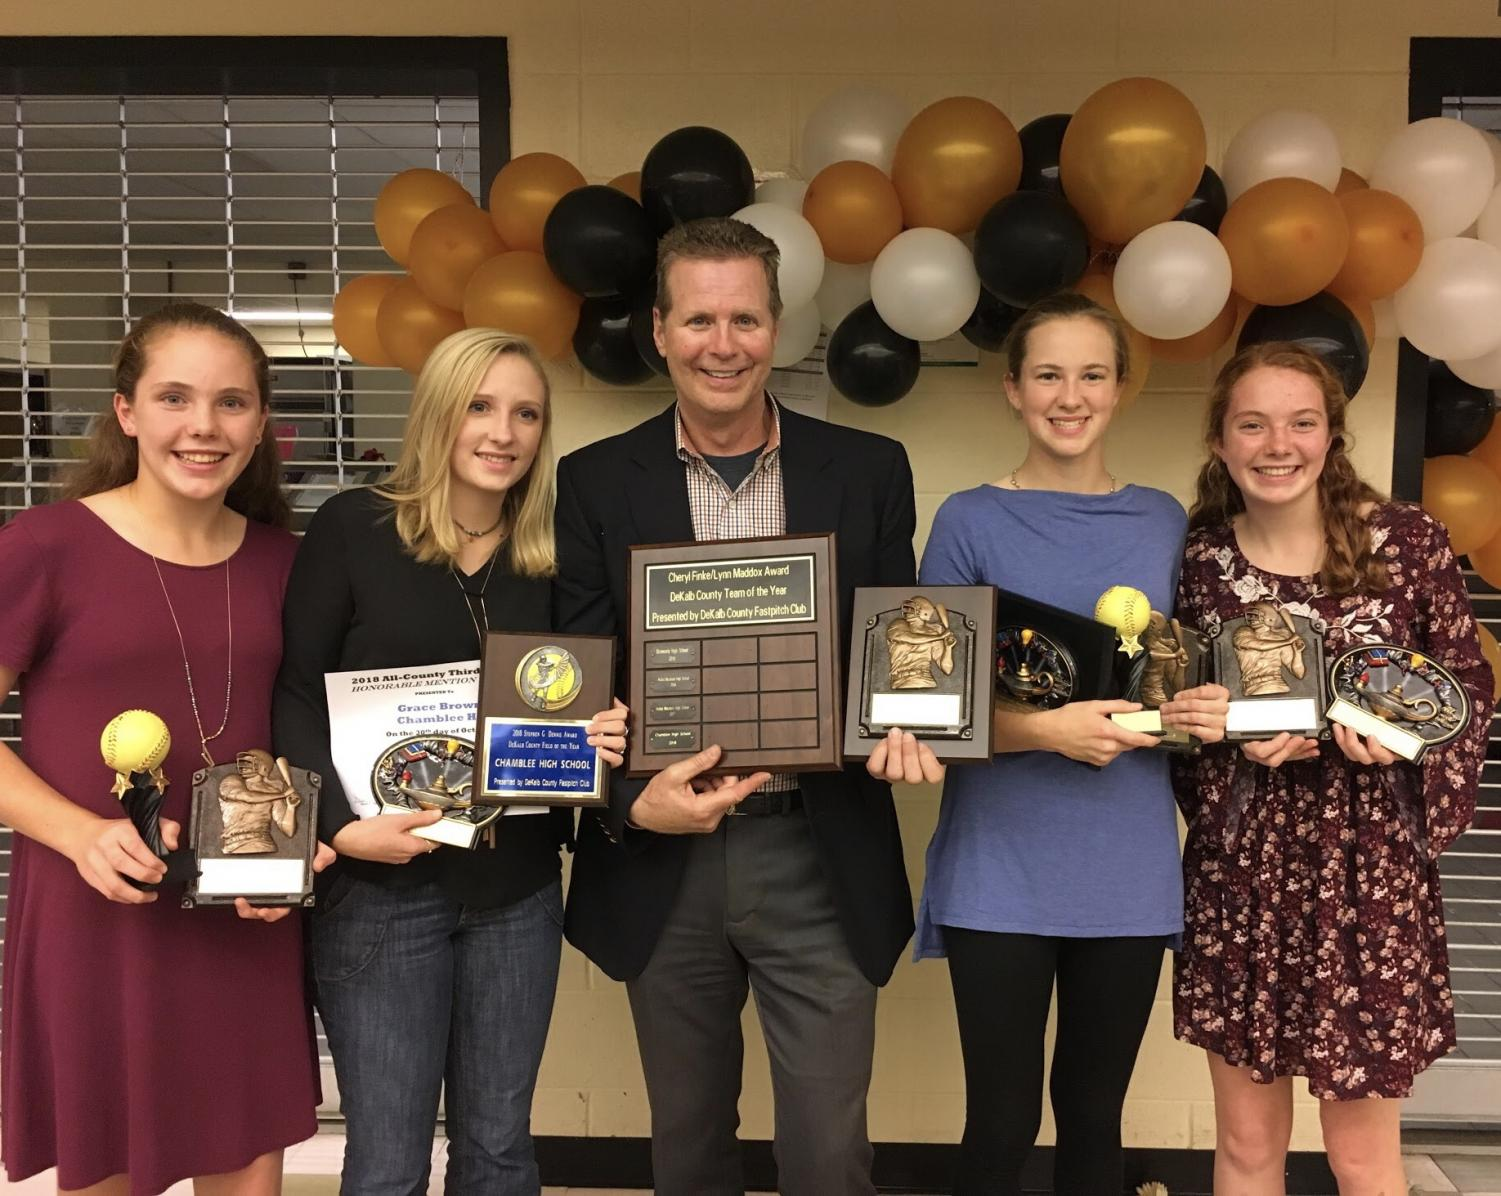 Coach Loper with some of his award winning team after a successful season.